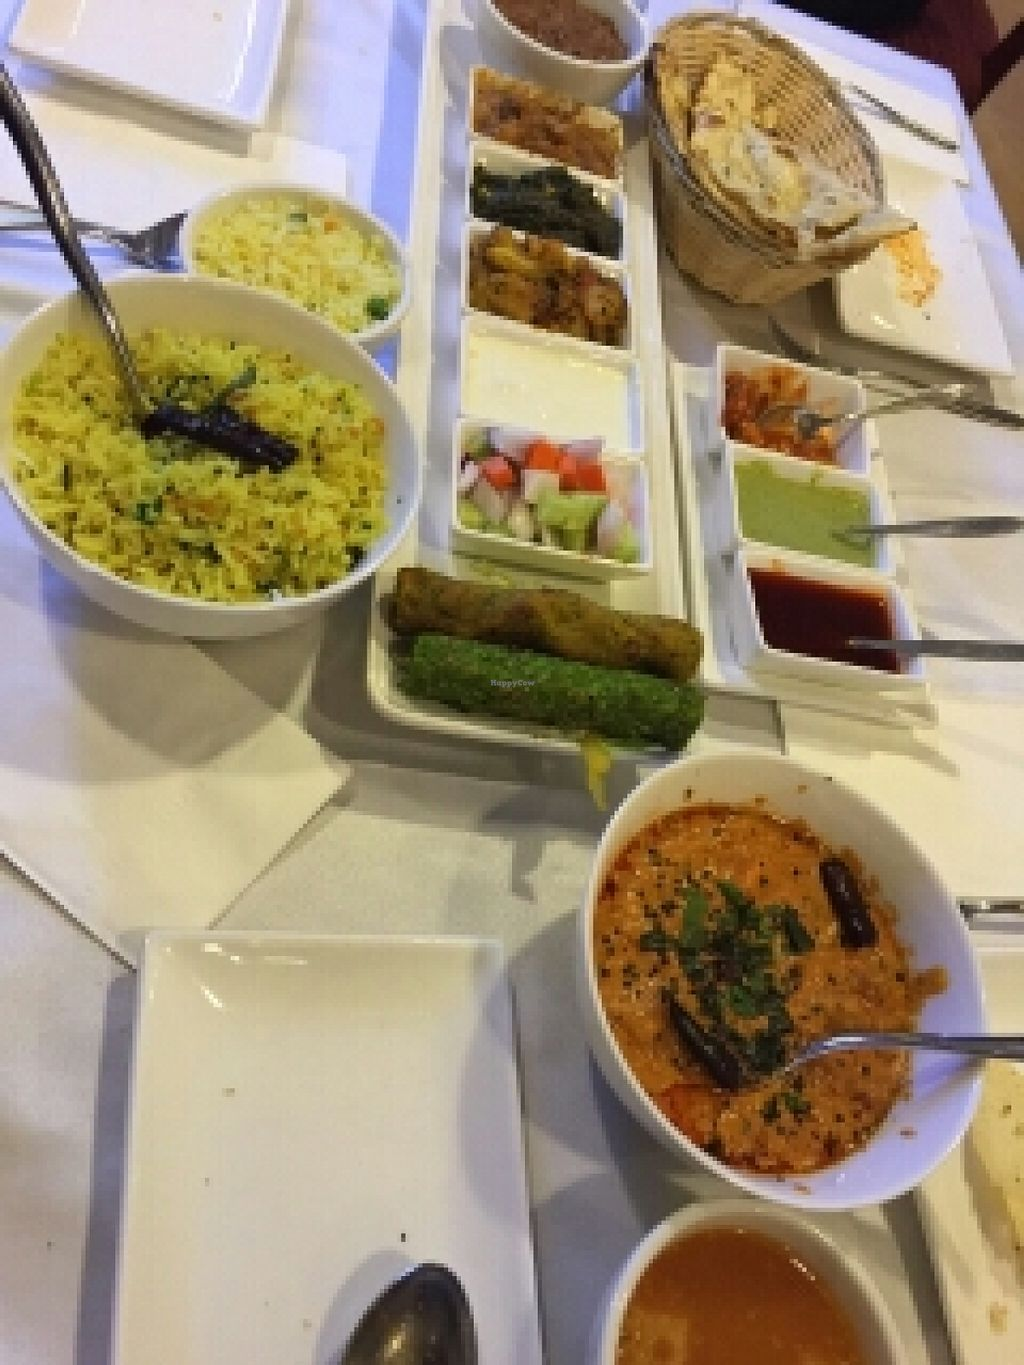 """Photo of Khana Khazana  by <a href=""""/members/profile/inthesewords"""">inthesewords</a> <br/>Thali set, with lemon rice and paneer achaari ♡ <br/> March 8, 2016  - <a href='/contact/abuse/image/11052/139337'>Report</a>"""